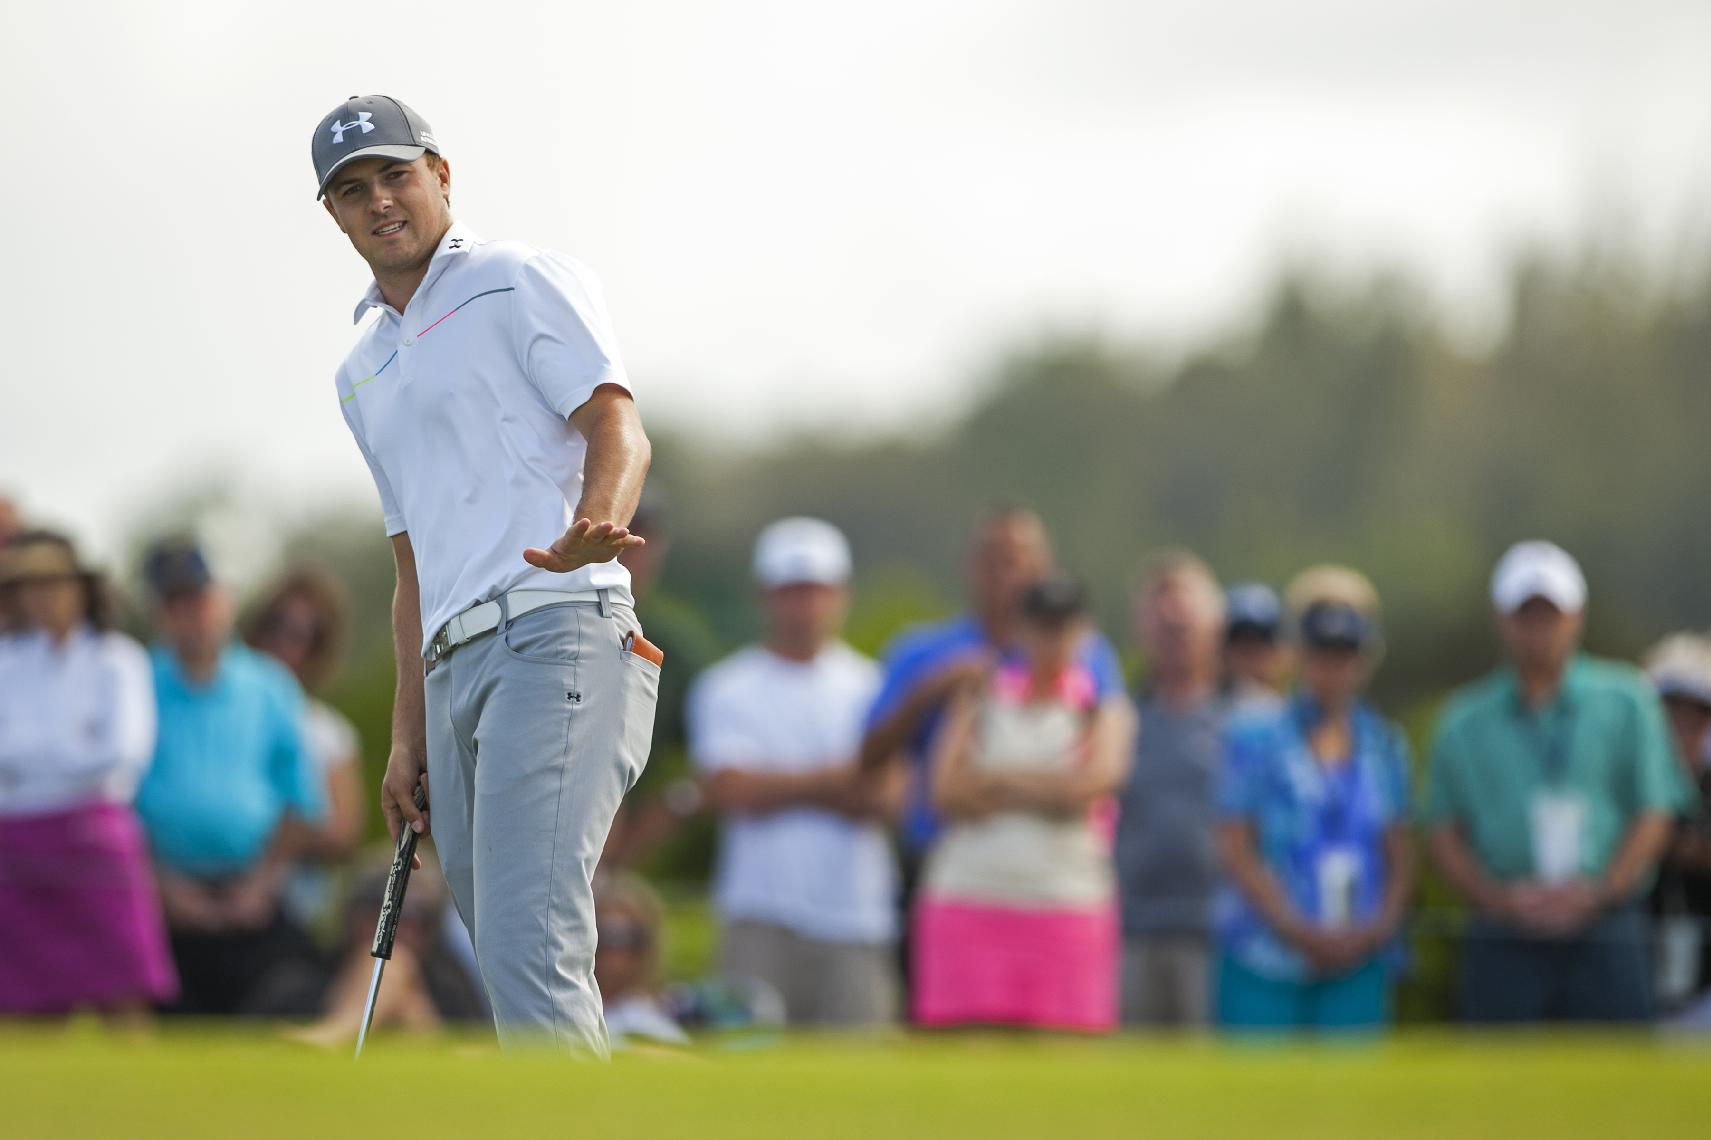 Jordan Spieth reacts to his putt on the 10th green during the final round of the Tournament of Champions golf tournament, Monday, Jan. 6, 2014, in Kapalua, Hawaii